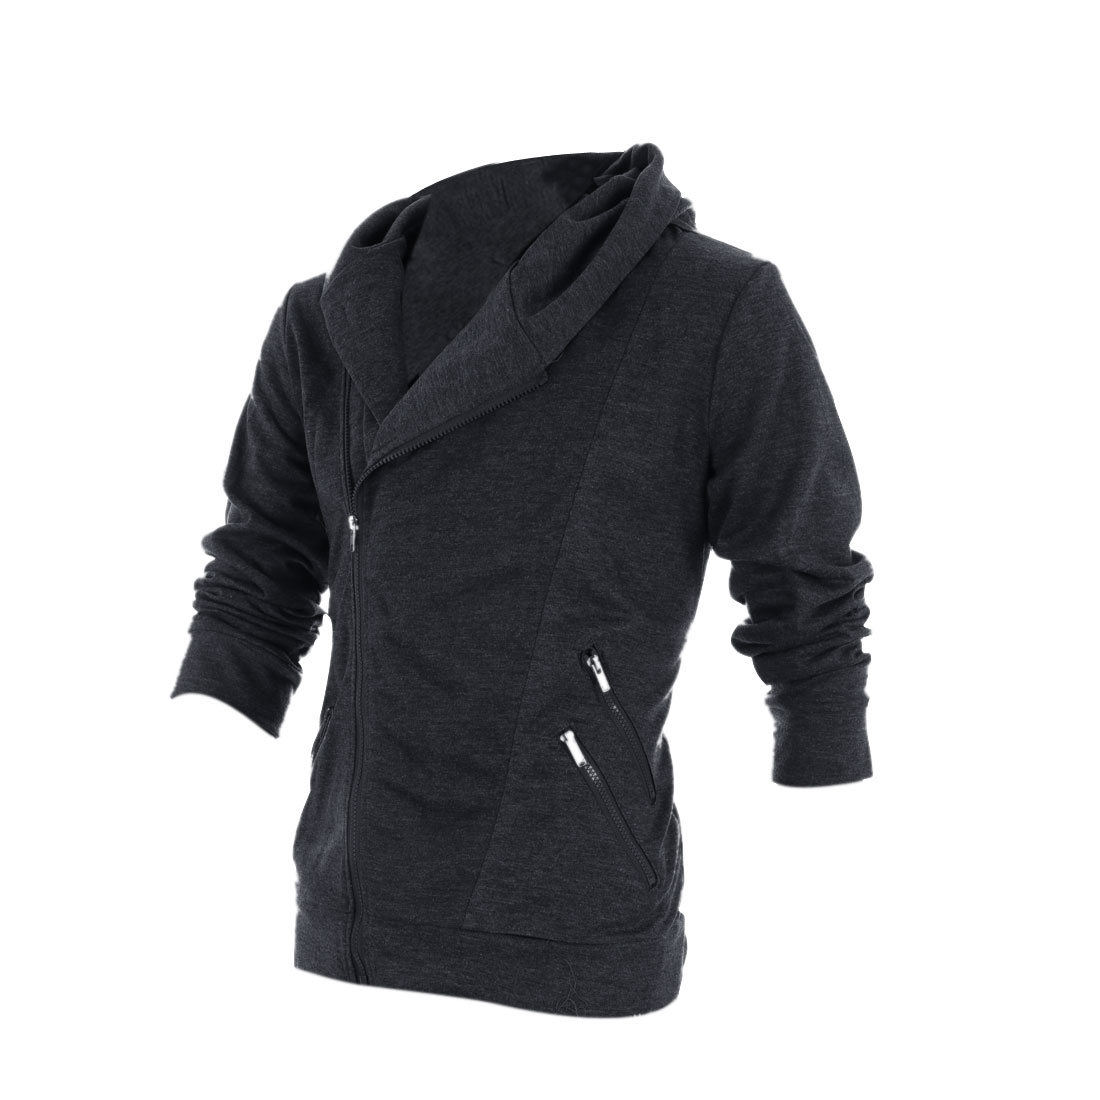 Men Zip Up Long Sleeve Autumn Wearing Hoodies Dark Gray M